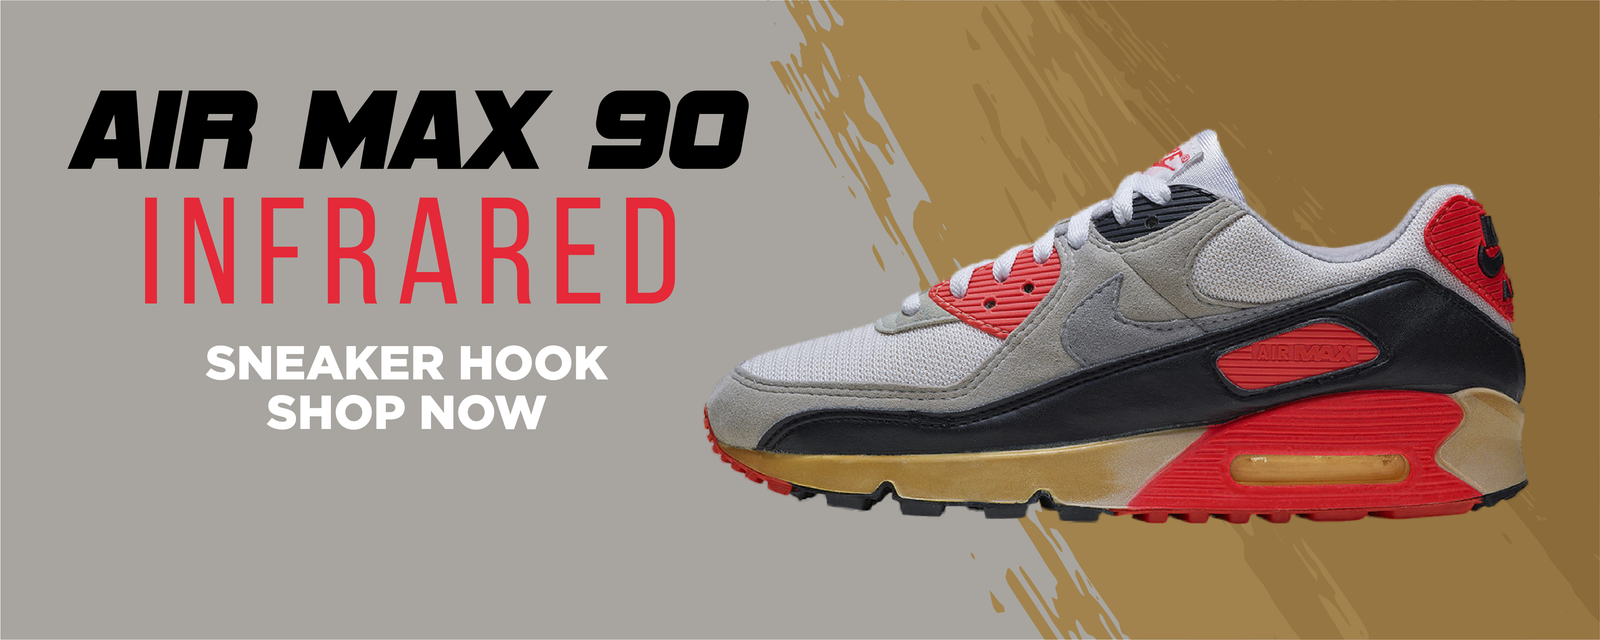 Air Max 90 Infrared Clothing to match Sneakers | Clothing to match Nike Air Max 90 Infrared Shoes